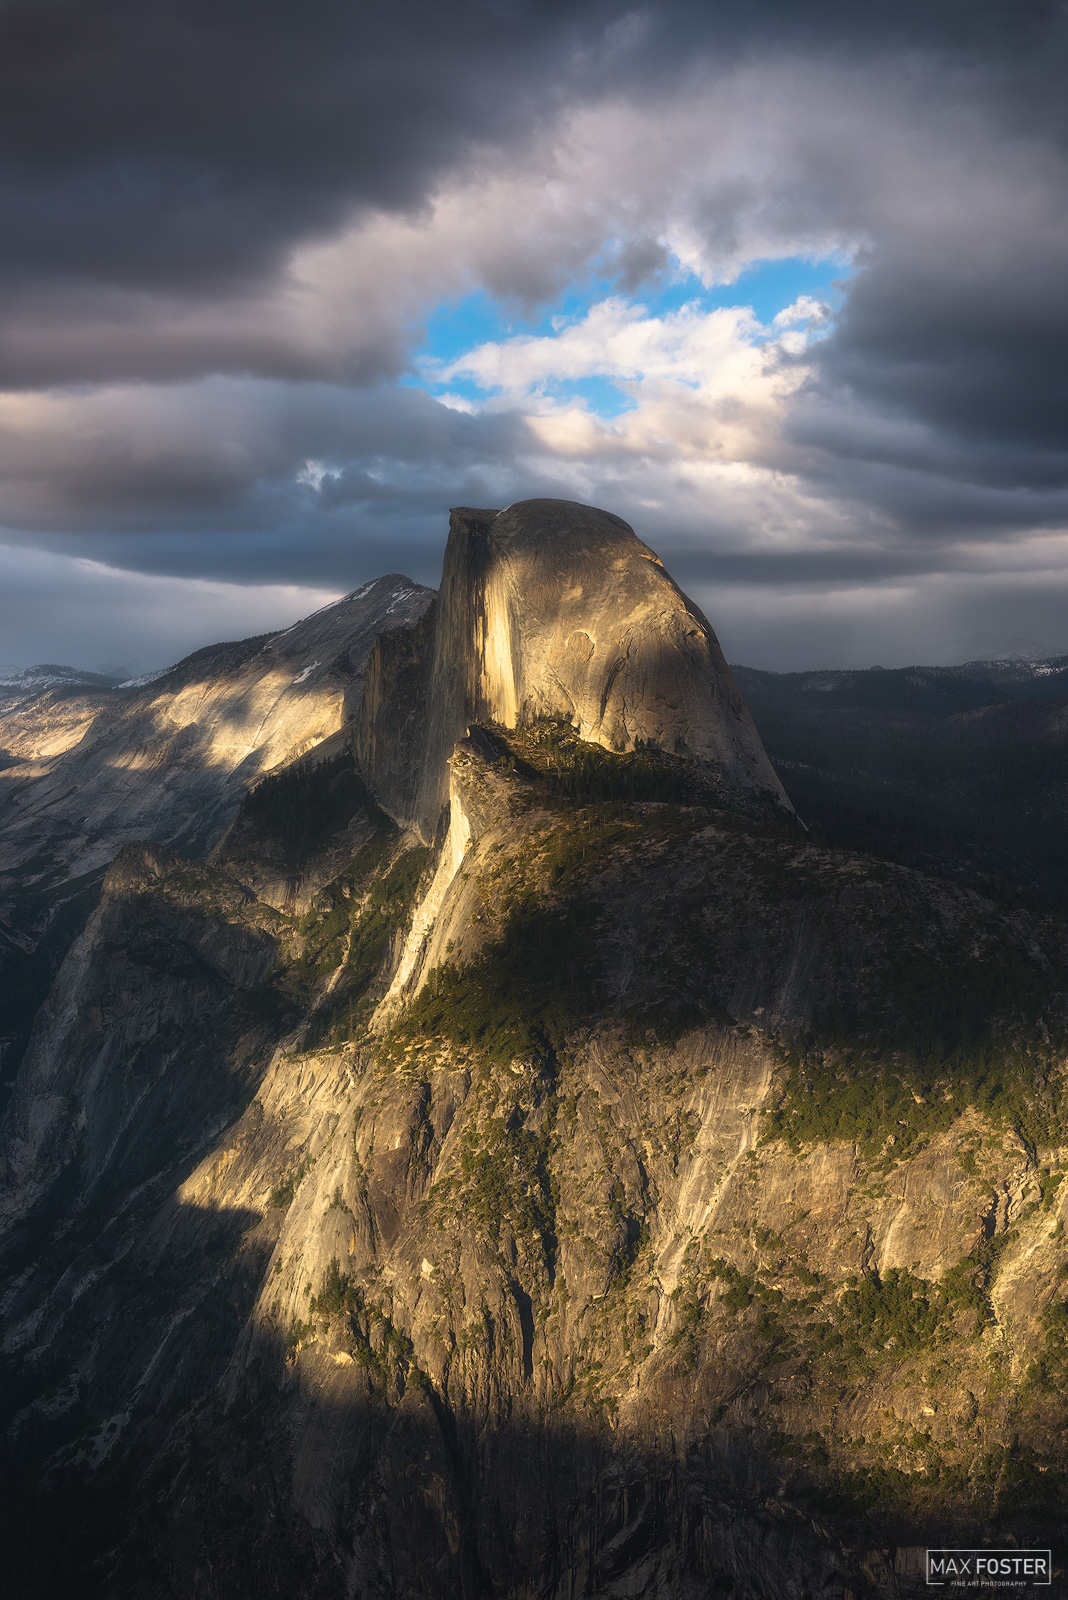 Yosemite National Park, California, Phantom, Half Dome, Granite Dome, Yosemite Valley, photo